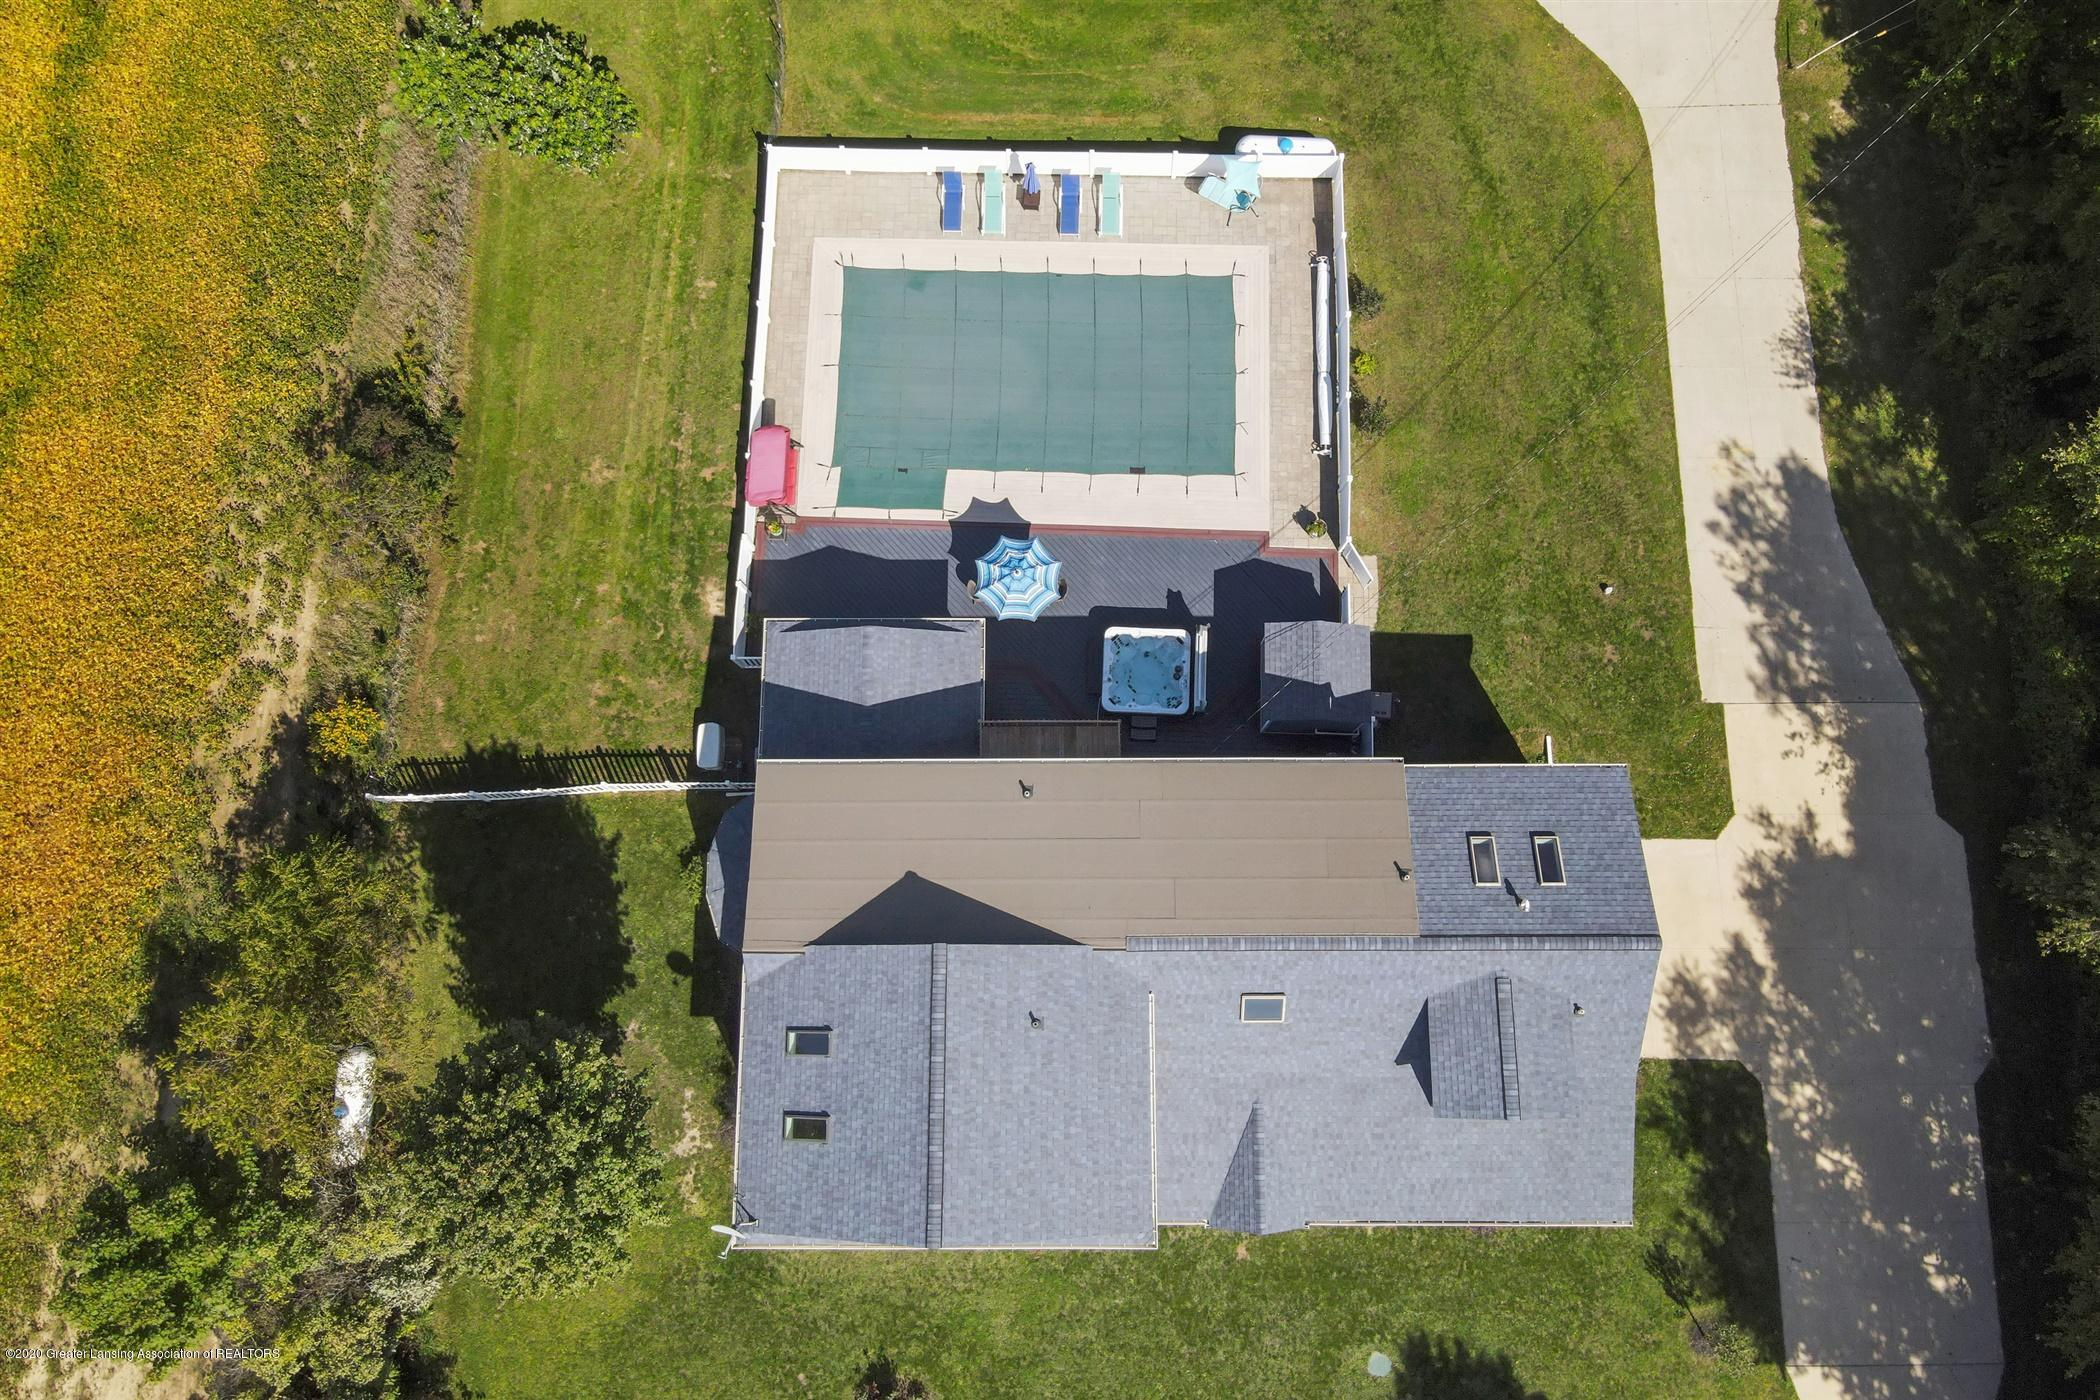 7346 W Cutler Rd - EAGLE EYE VIEW ABOVE HOME - 71